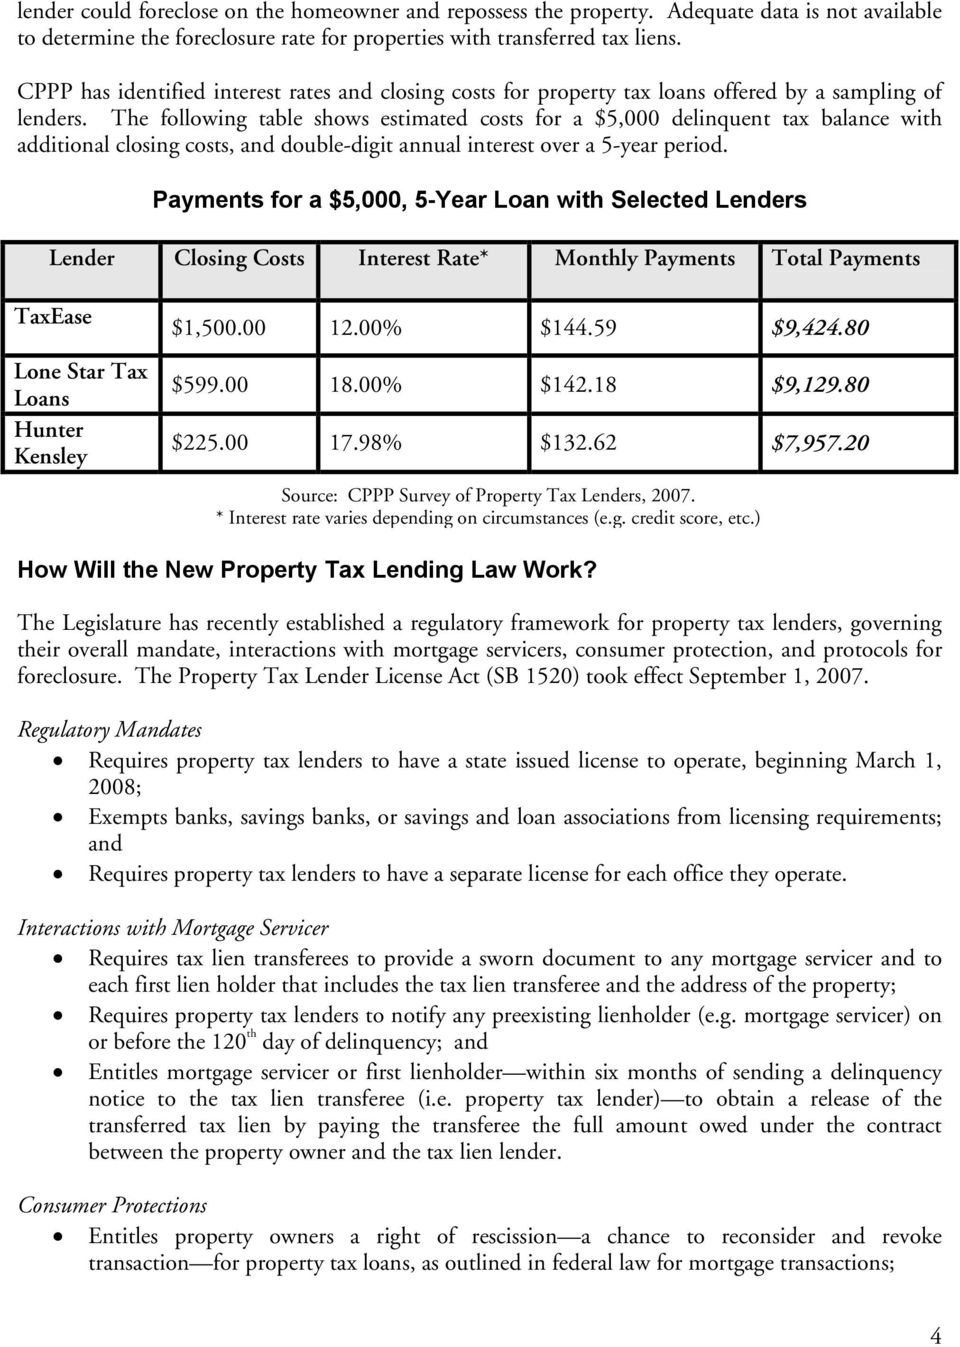 The following table shows estimated costs for a $5,000 delinquent tax balance with additional closing costs, and double-digit annual interest over a 5-year period.